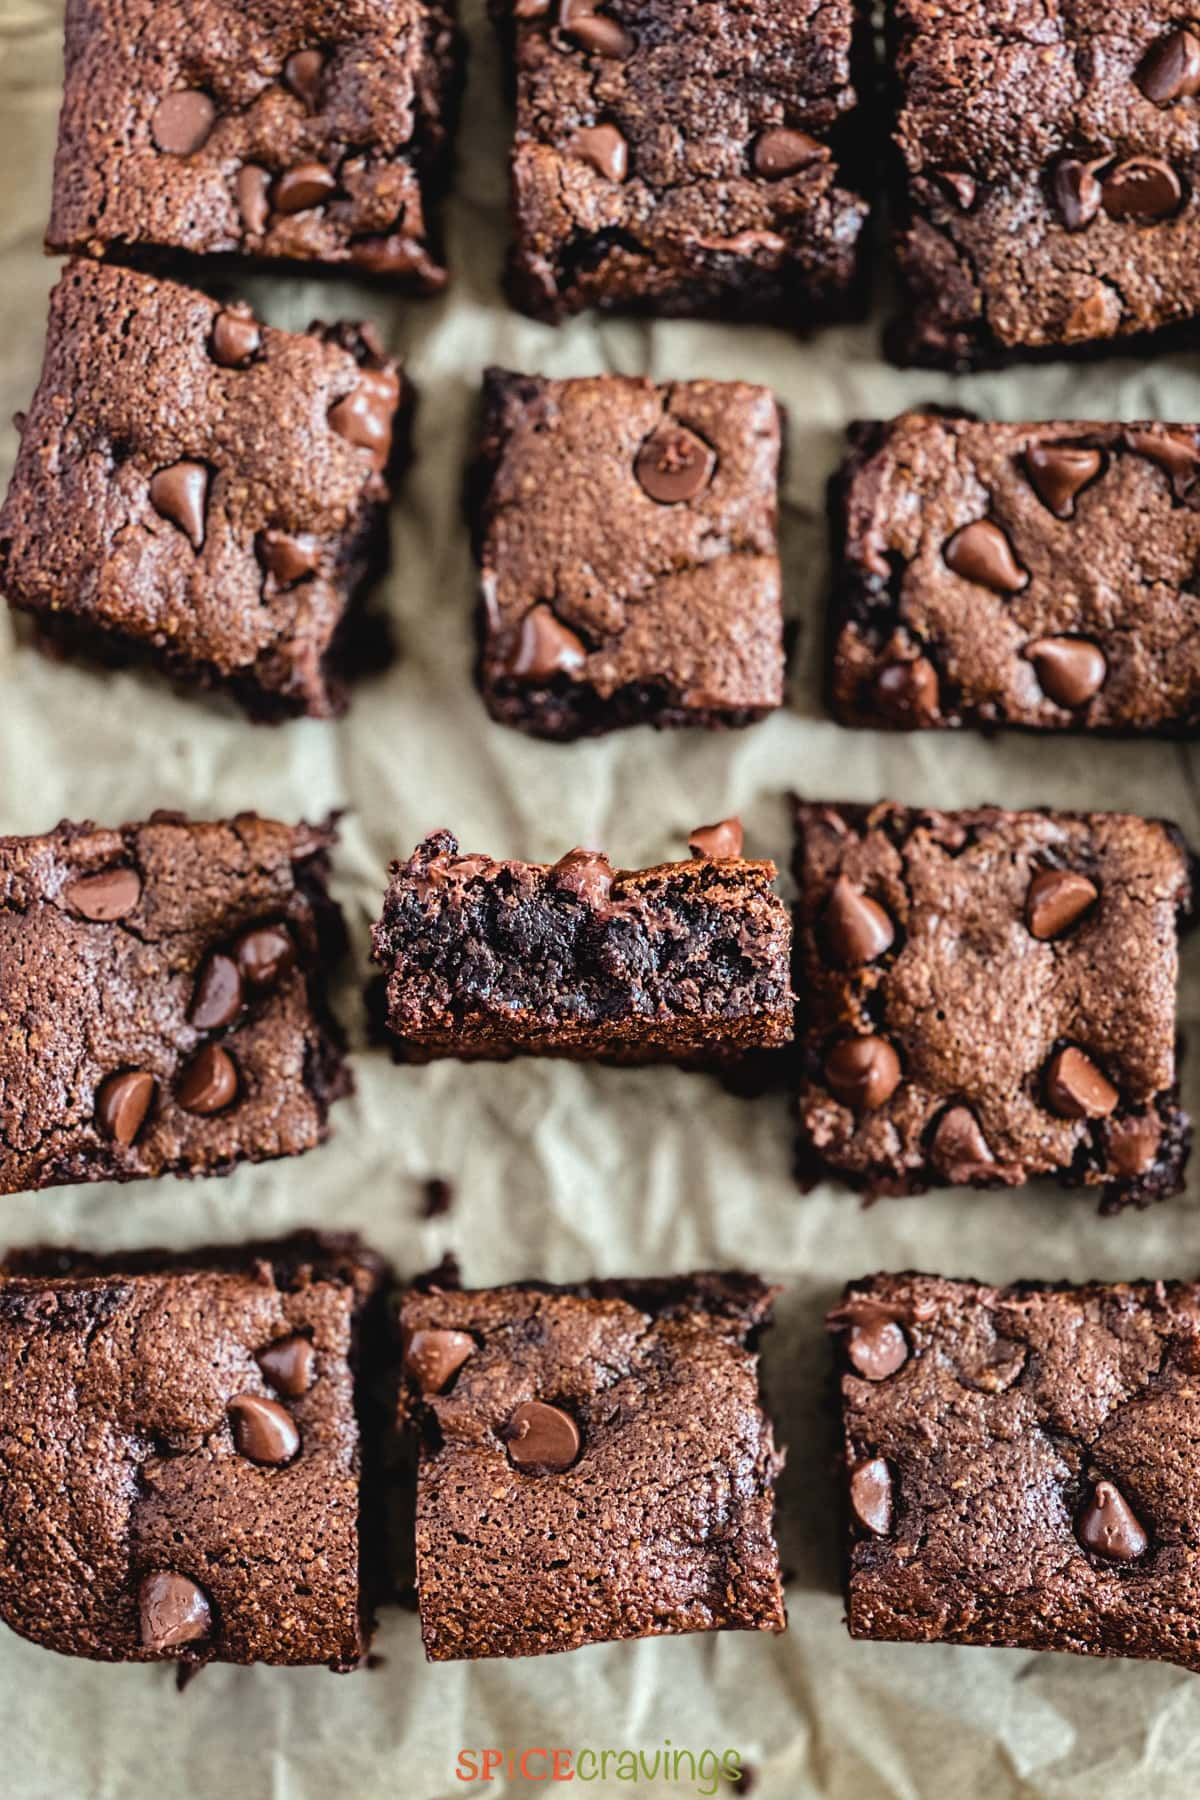 Gooey brownies on a piece of parchment paper